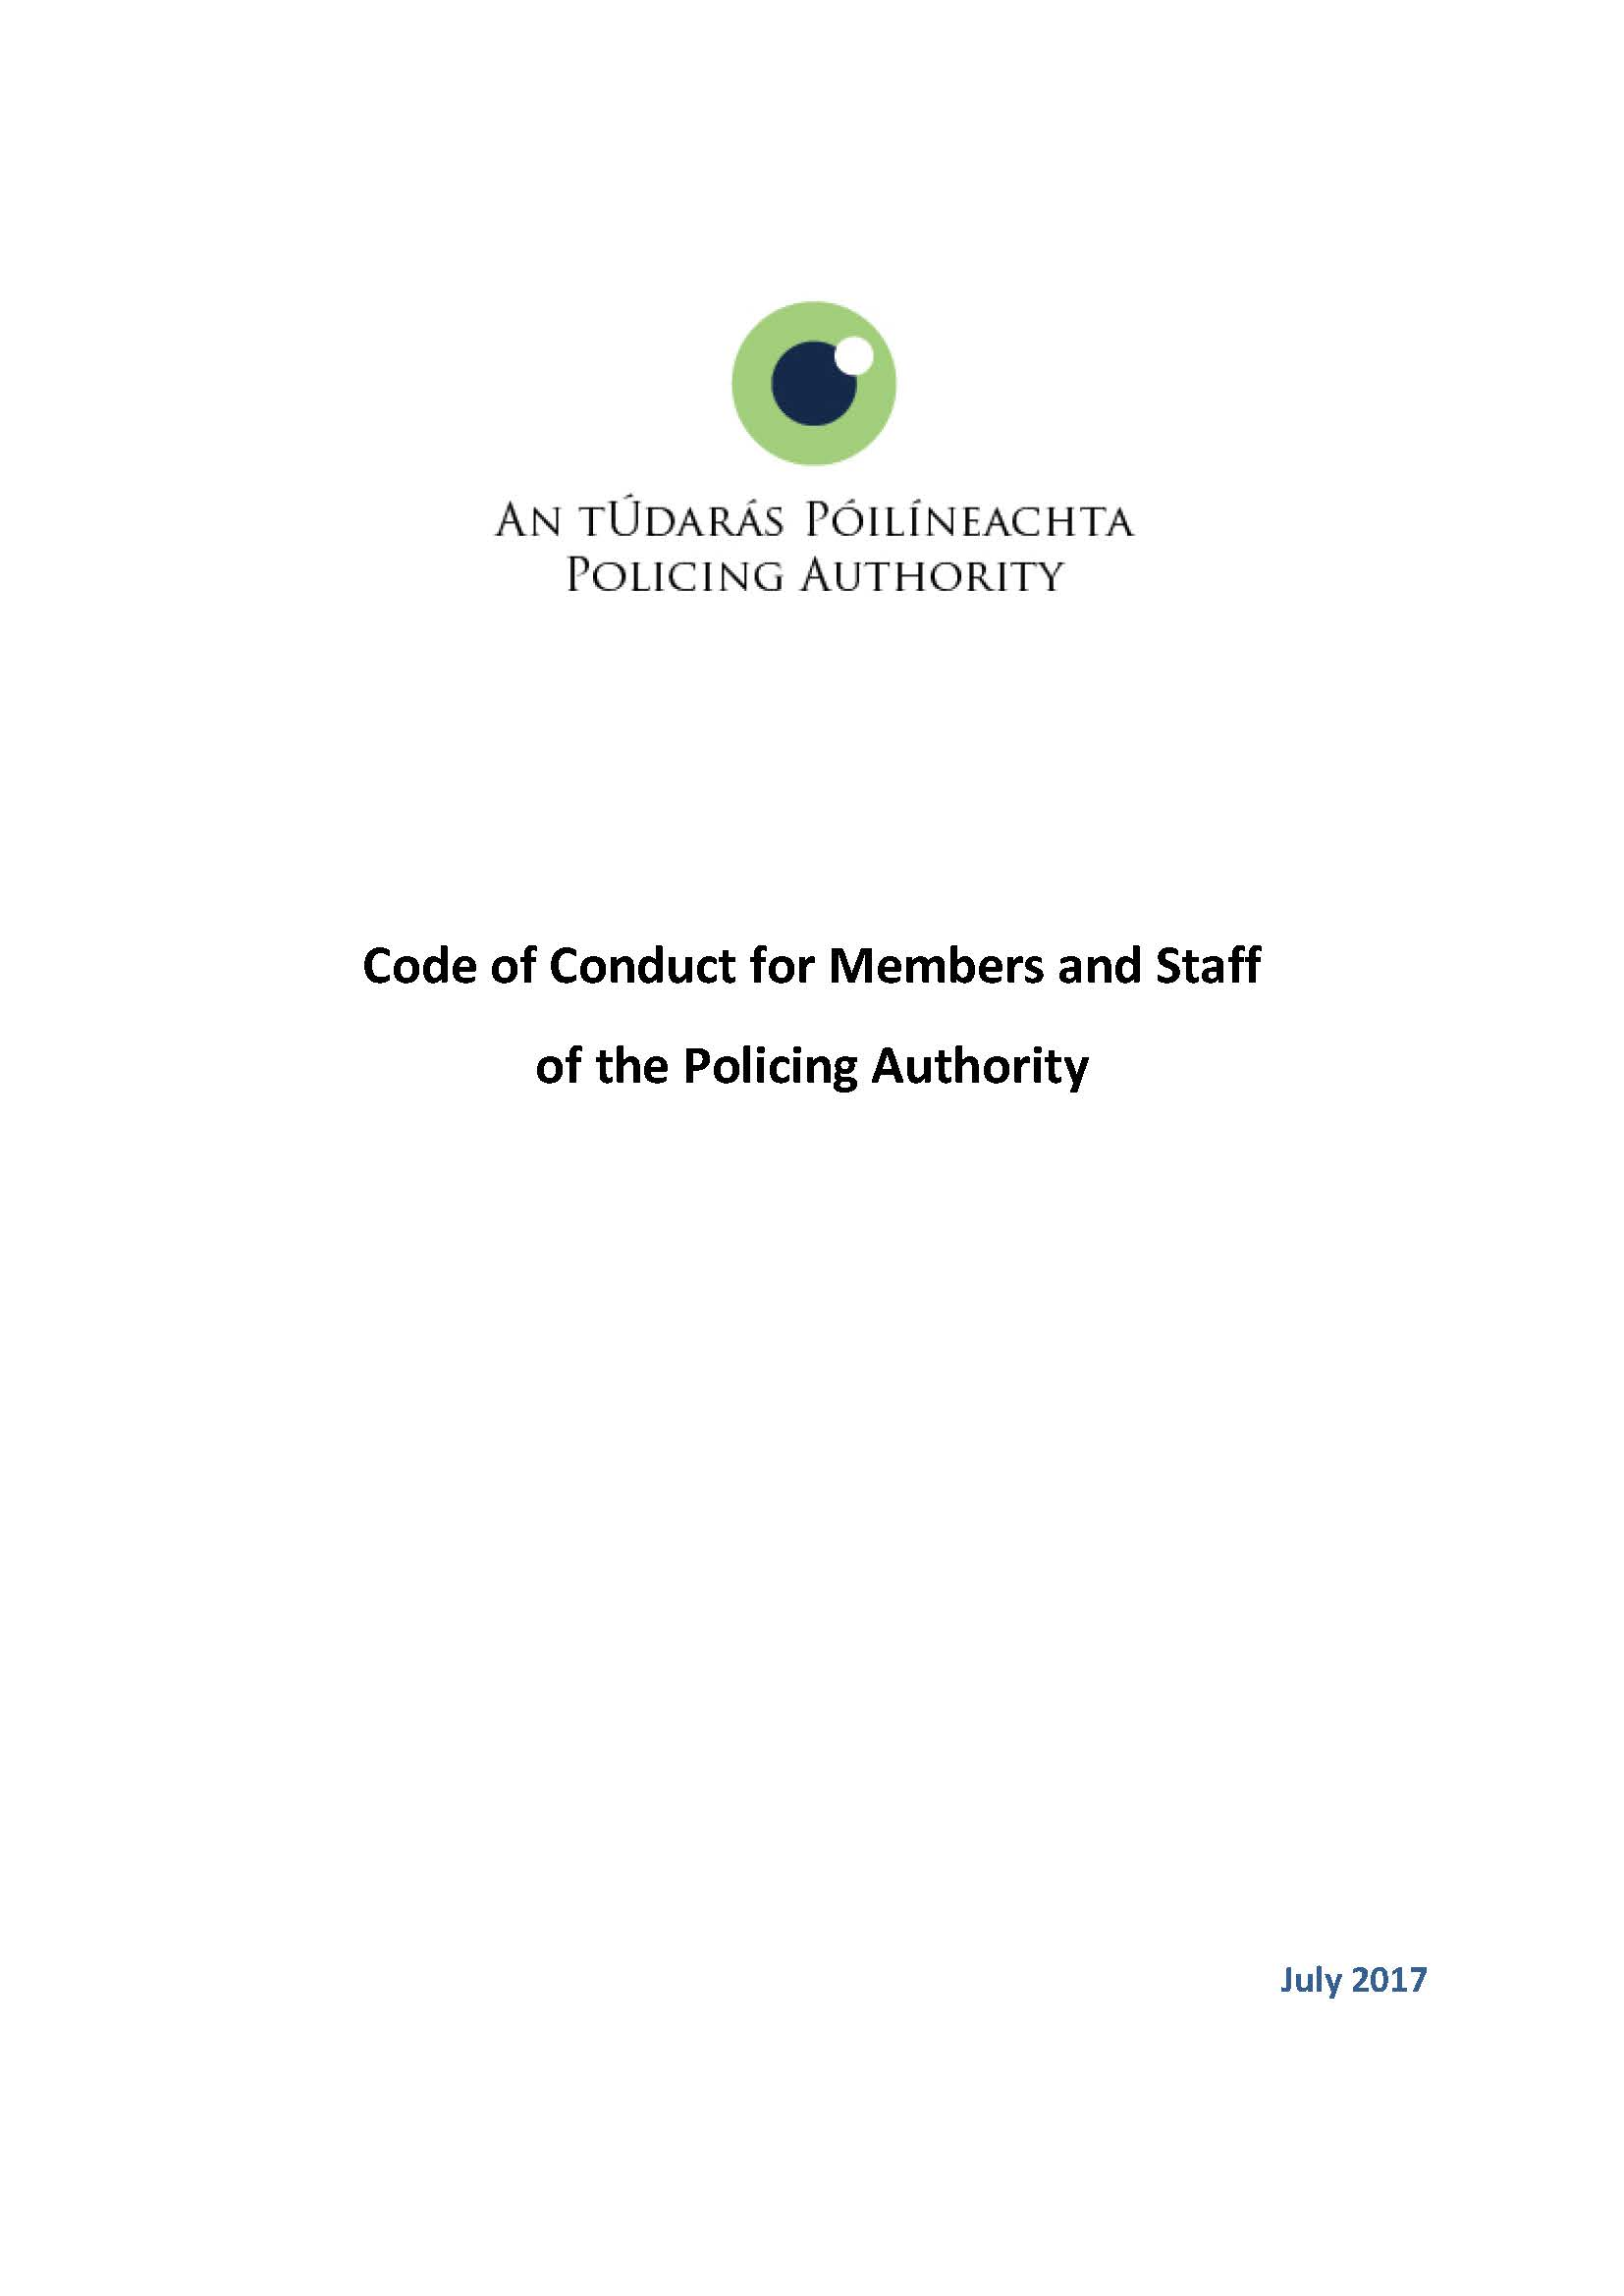 Policing Authority Code of Conduct